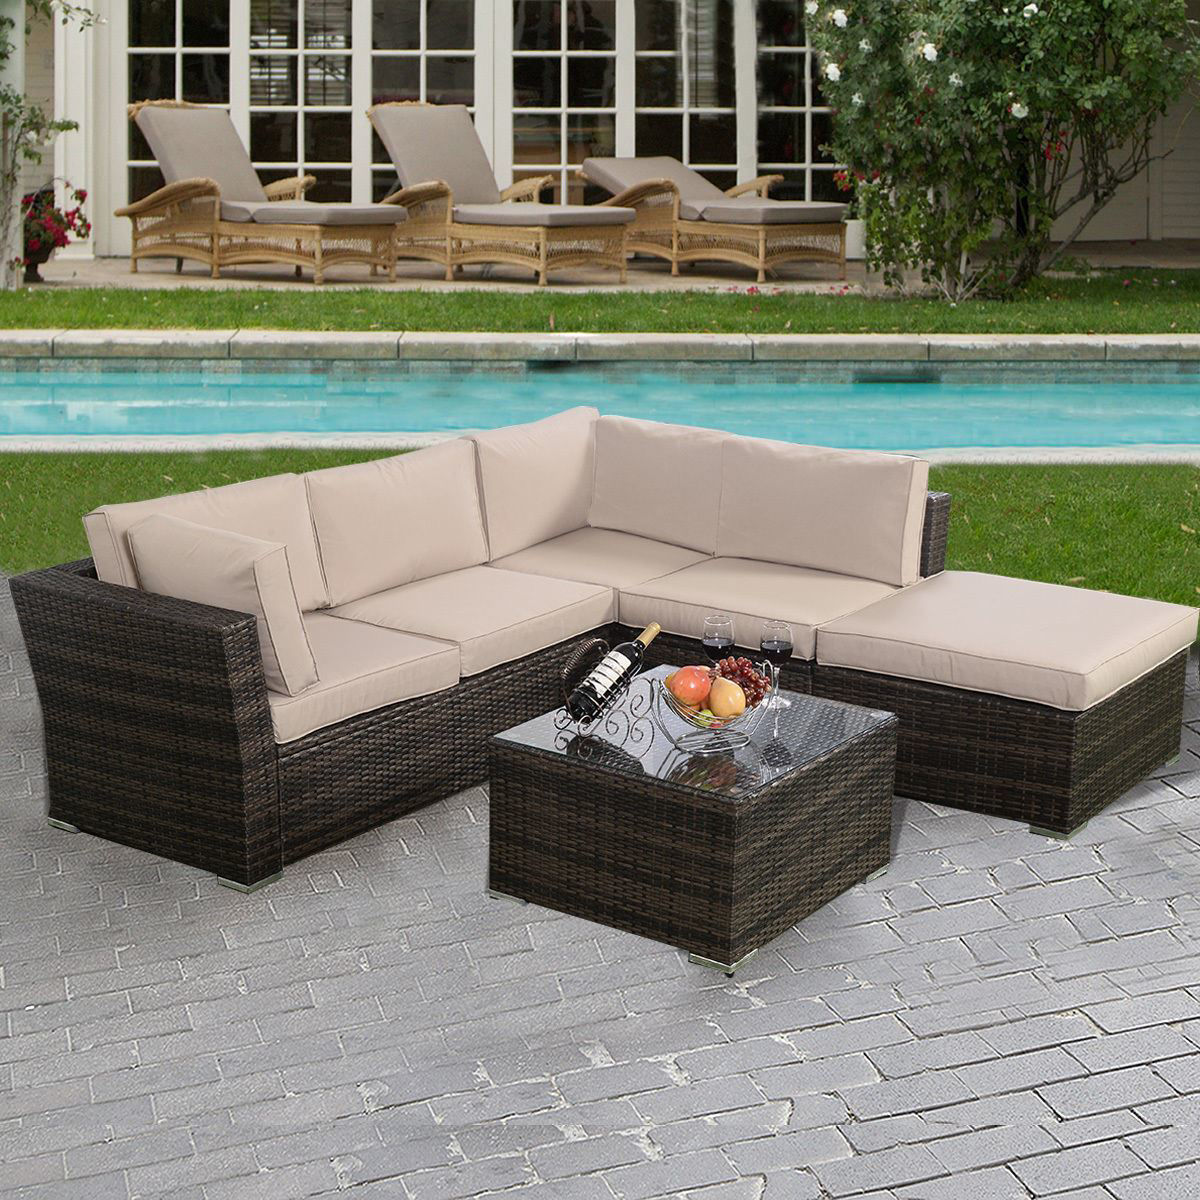 Picture of Outdoor Patio Wicker Furniture Seat Cushioned 4 Pieces